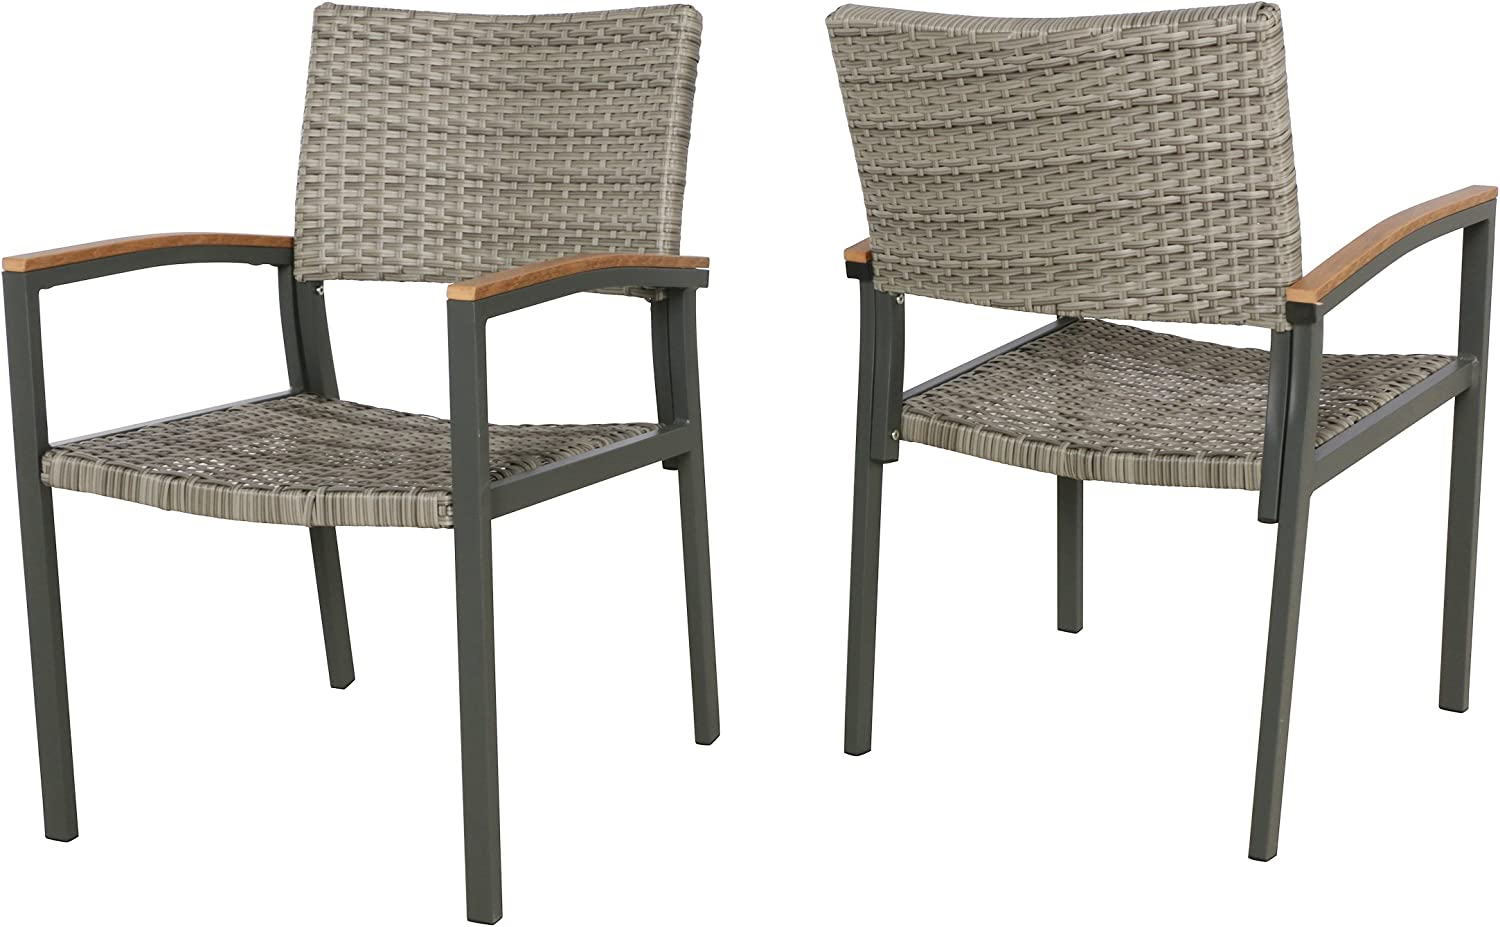 Christopher Knight Home 305313 Emma Outdoor Wicker Dining Chair with Aluminum Frame (Set of 2), Gray